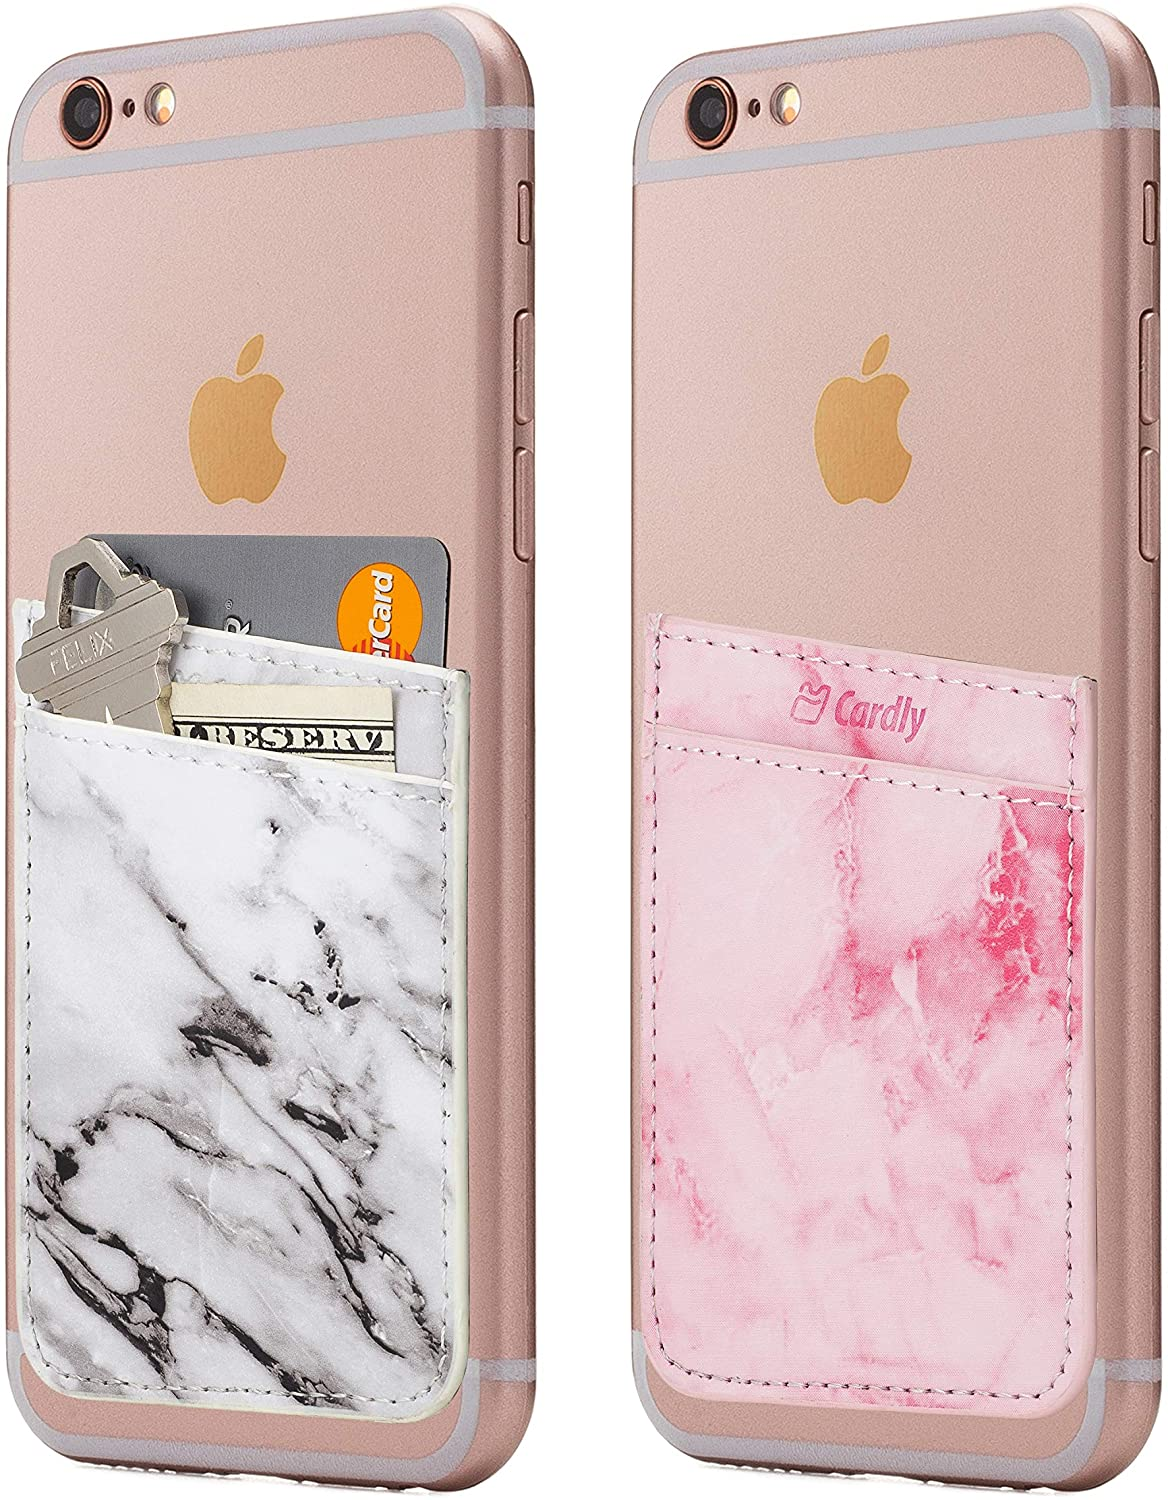 (Two) Leather Cell Phone Stick On Wallet Card Holder Phone Pocket for iPhone, Android and All Smartphones. (White & Pink)